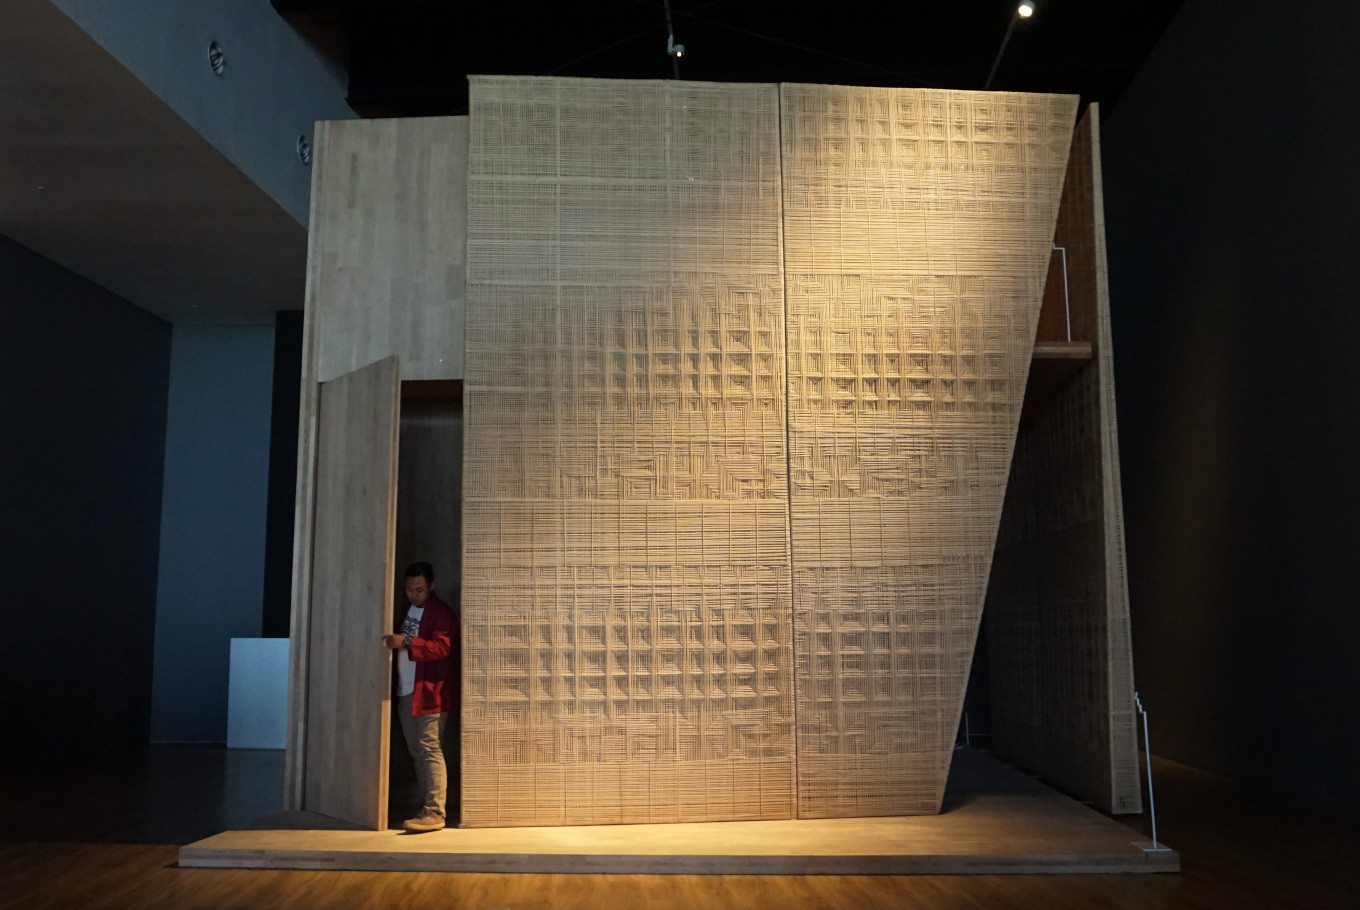 Lim Masulin strives to bring weaving into the future